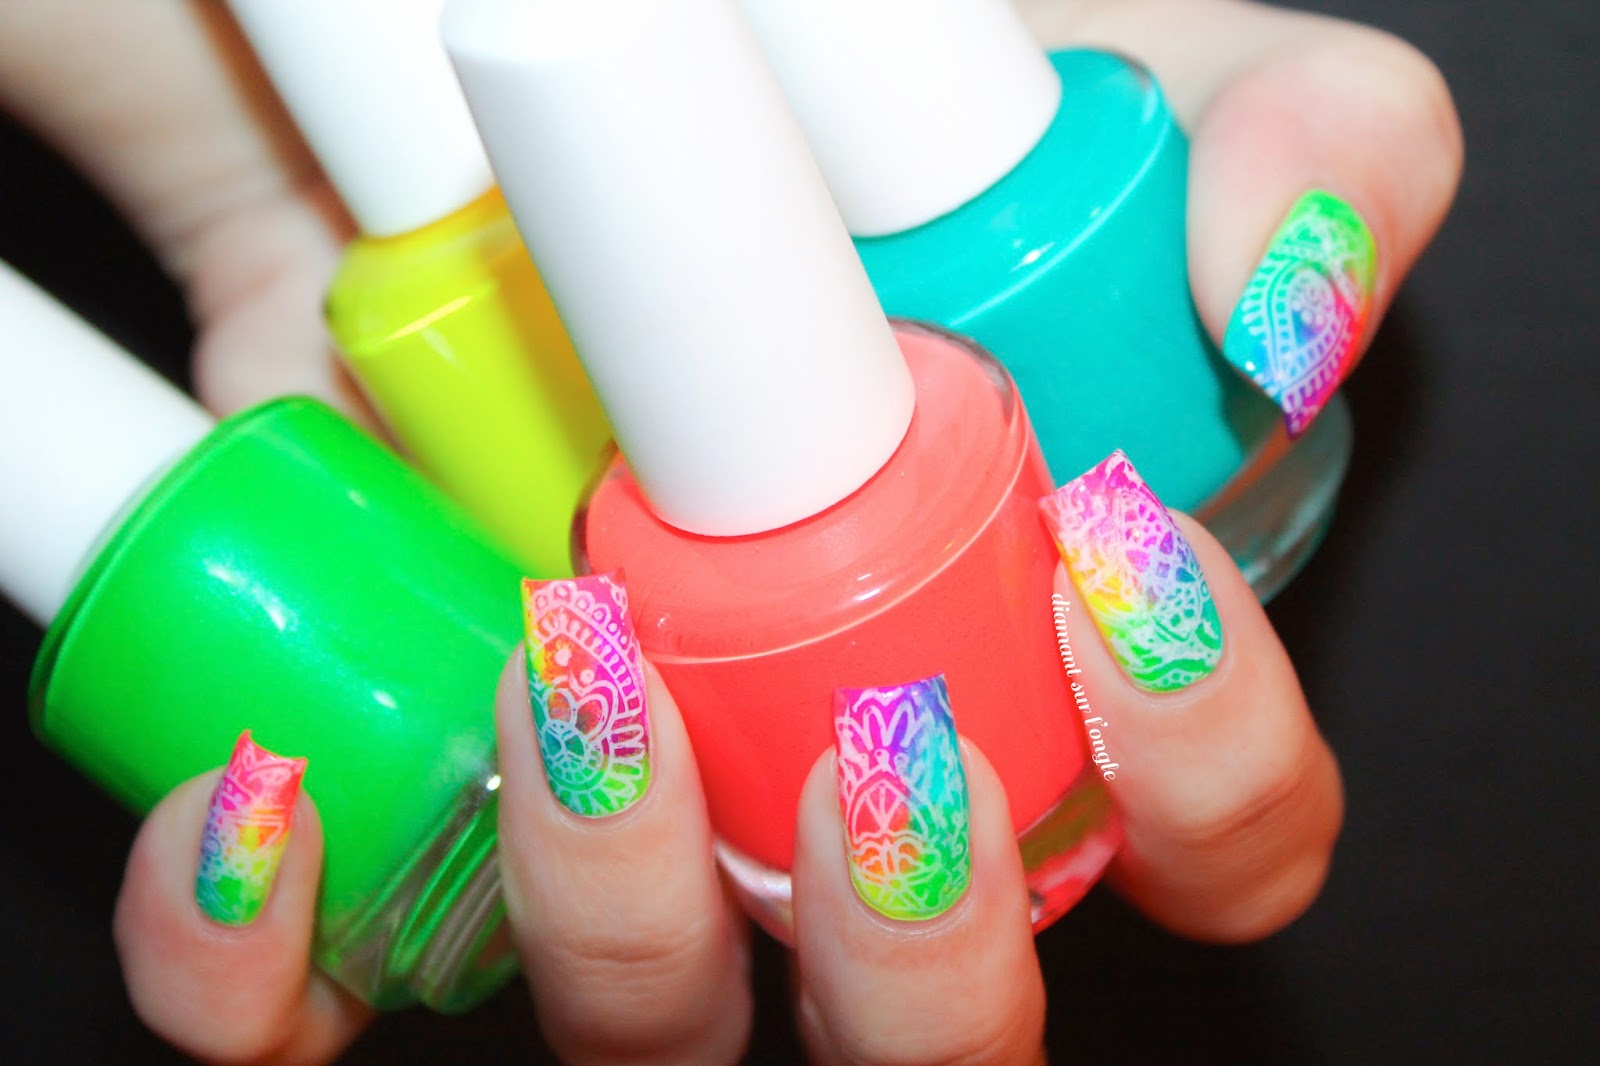 Neon Colorful Nail Art done for Holi